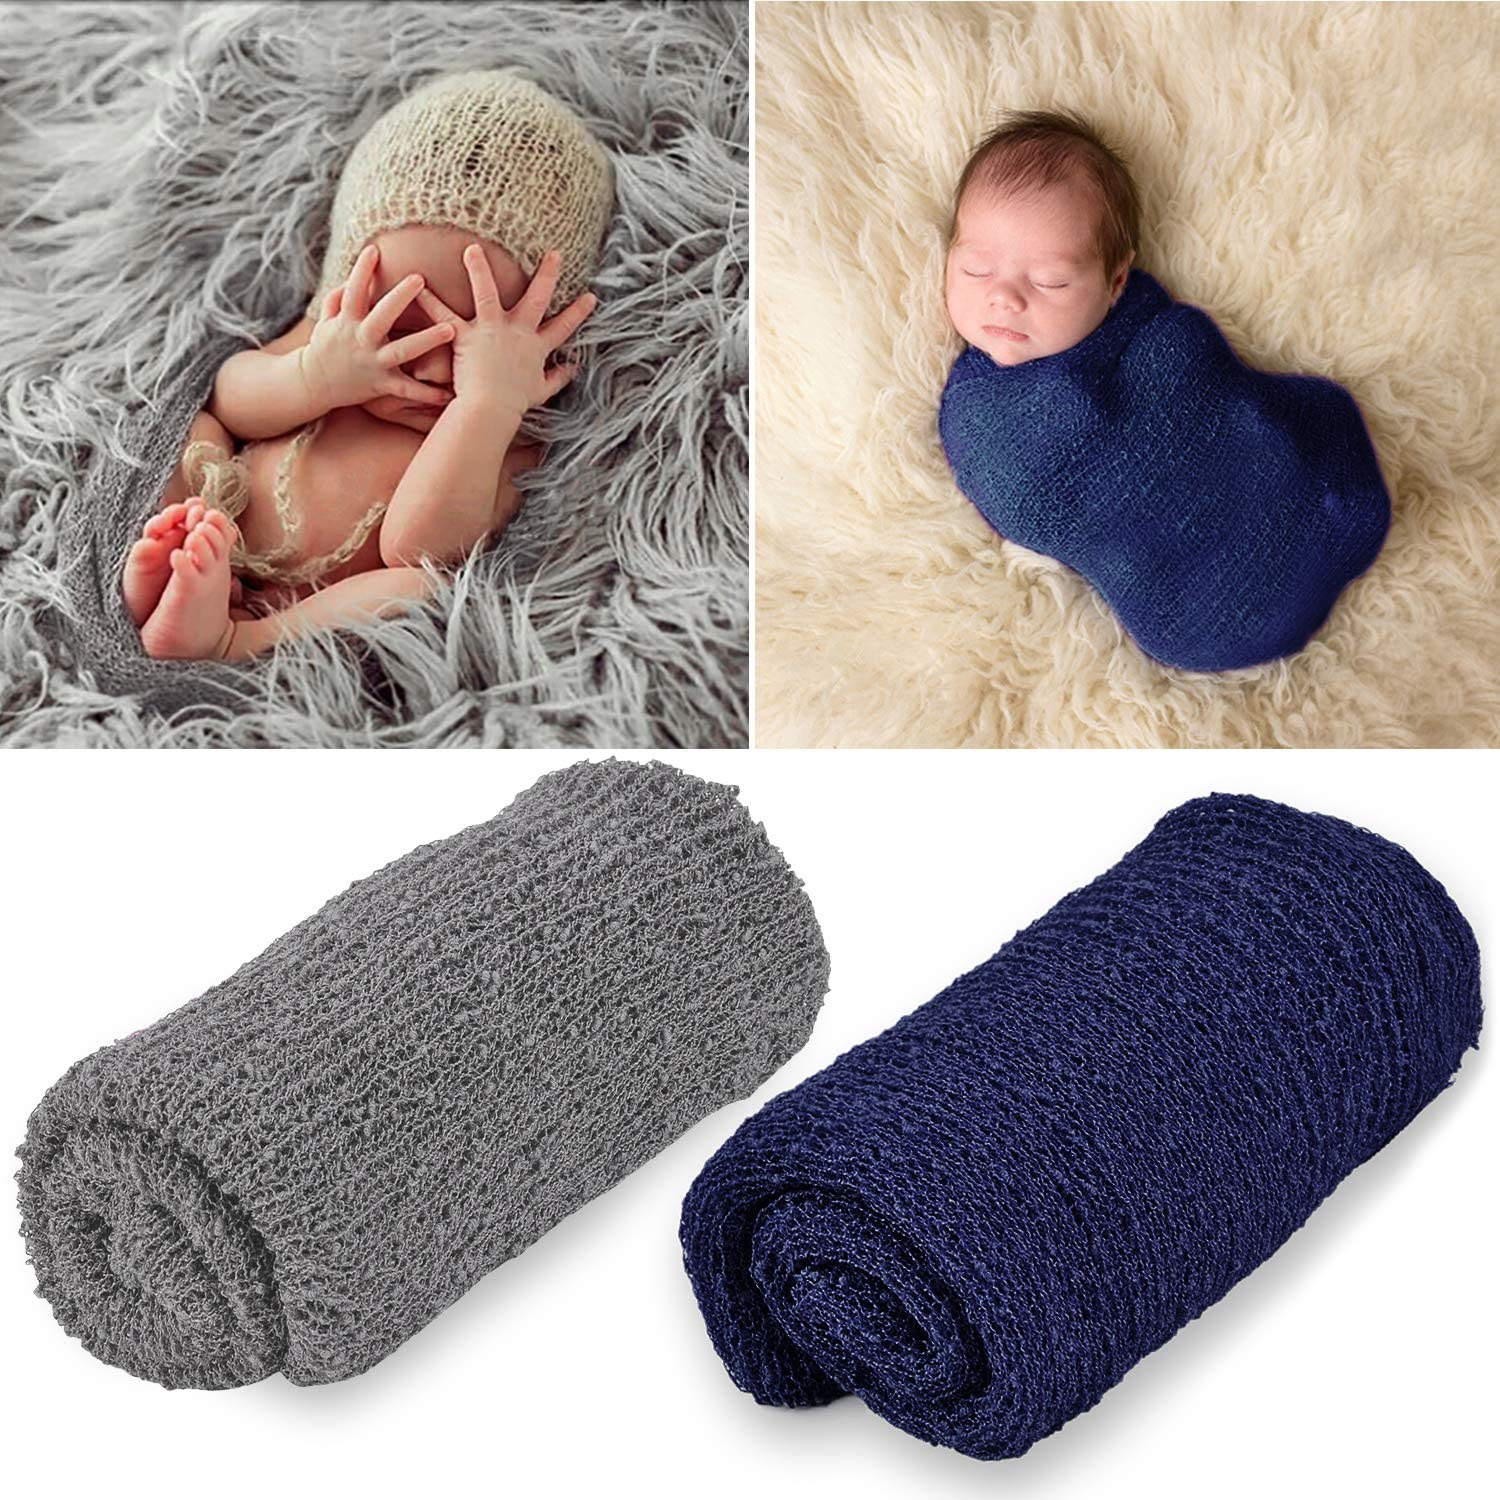 Photography Props,Aniwon 2 Pcs Baby Photo Long Ripple Wrap Blanket for Newborn